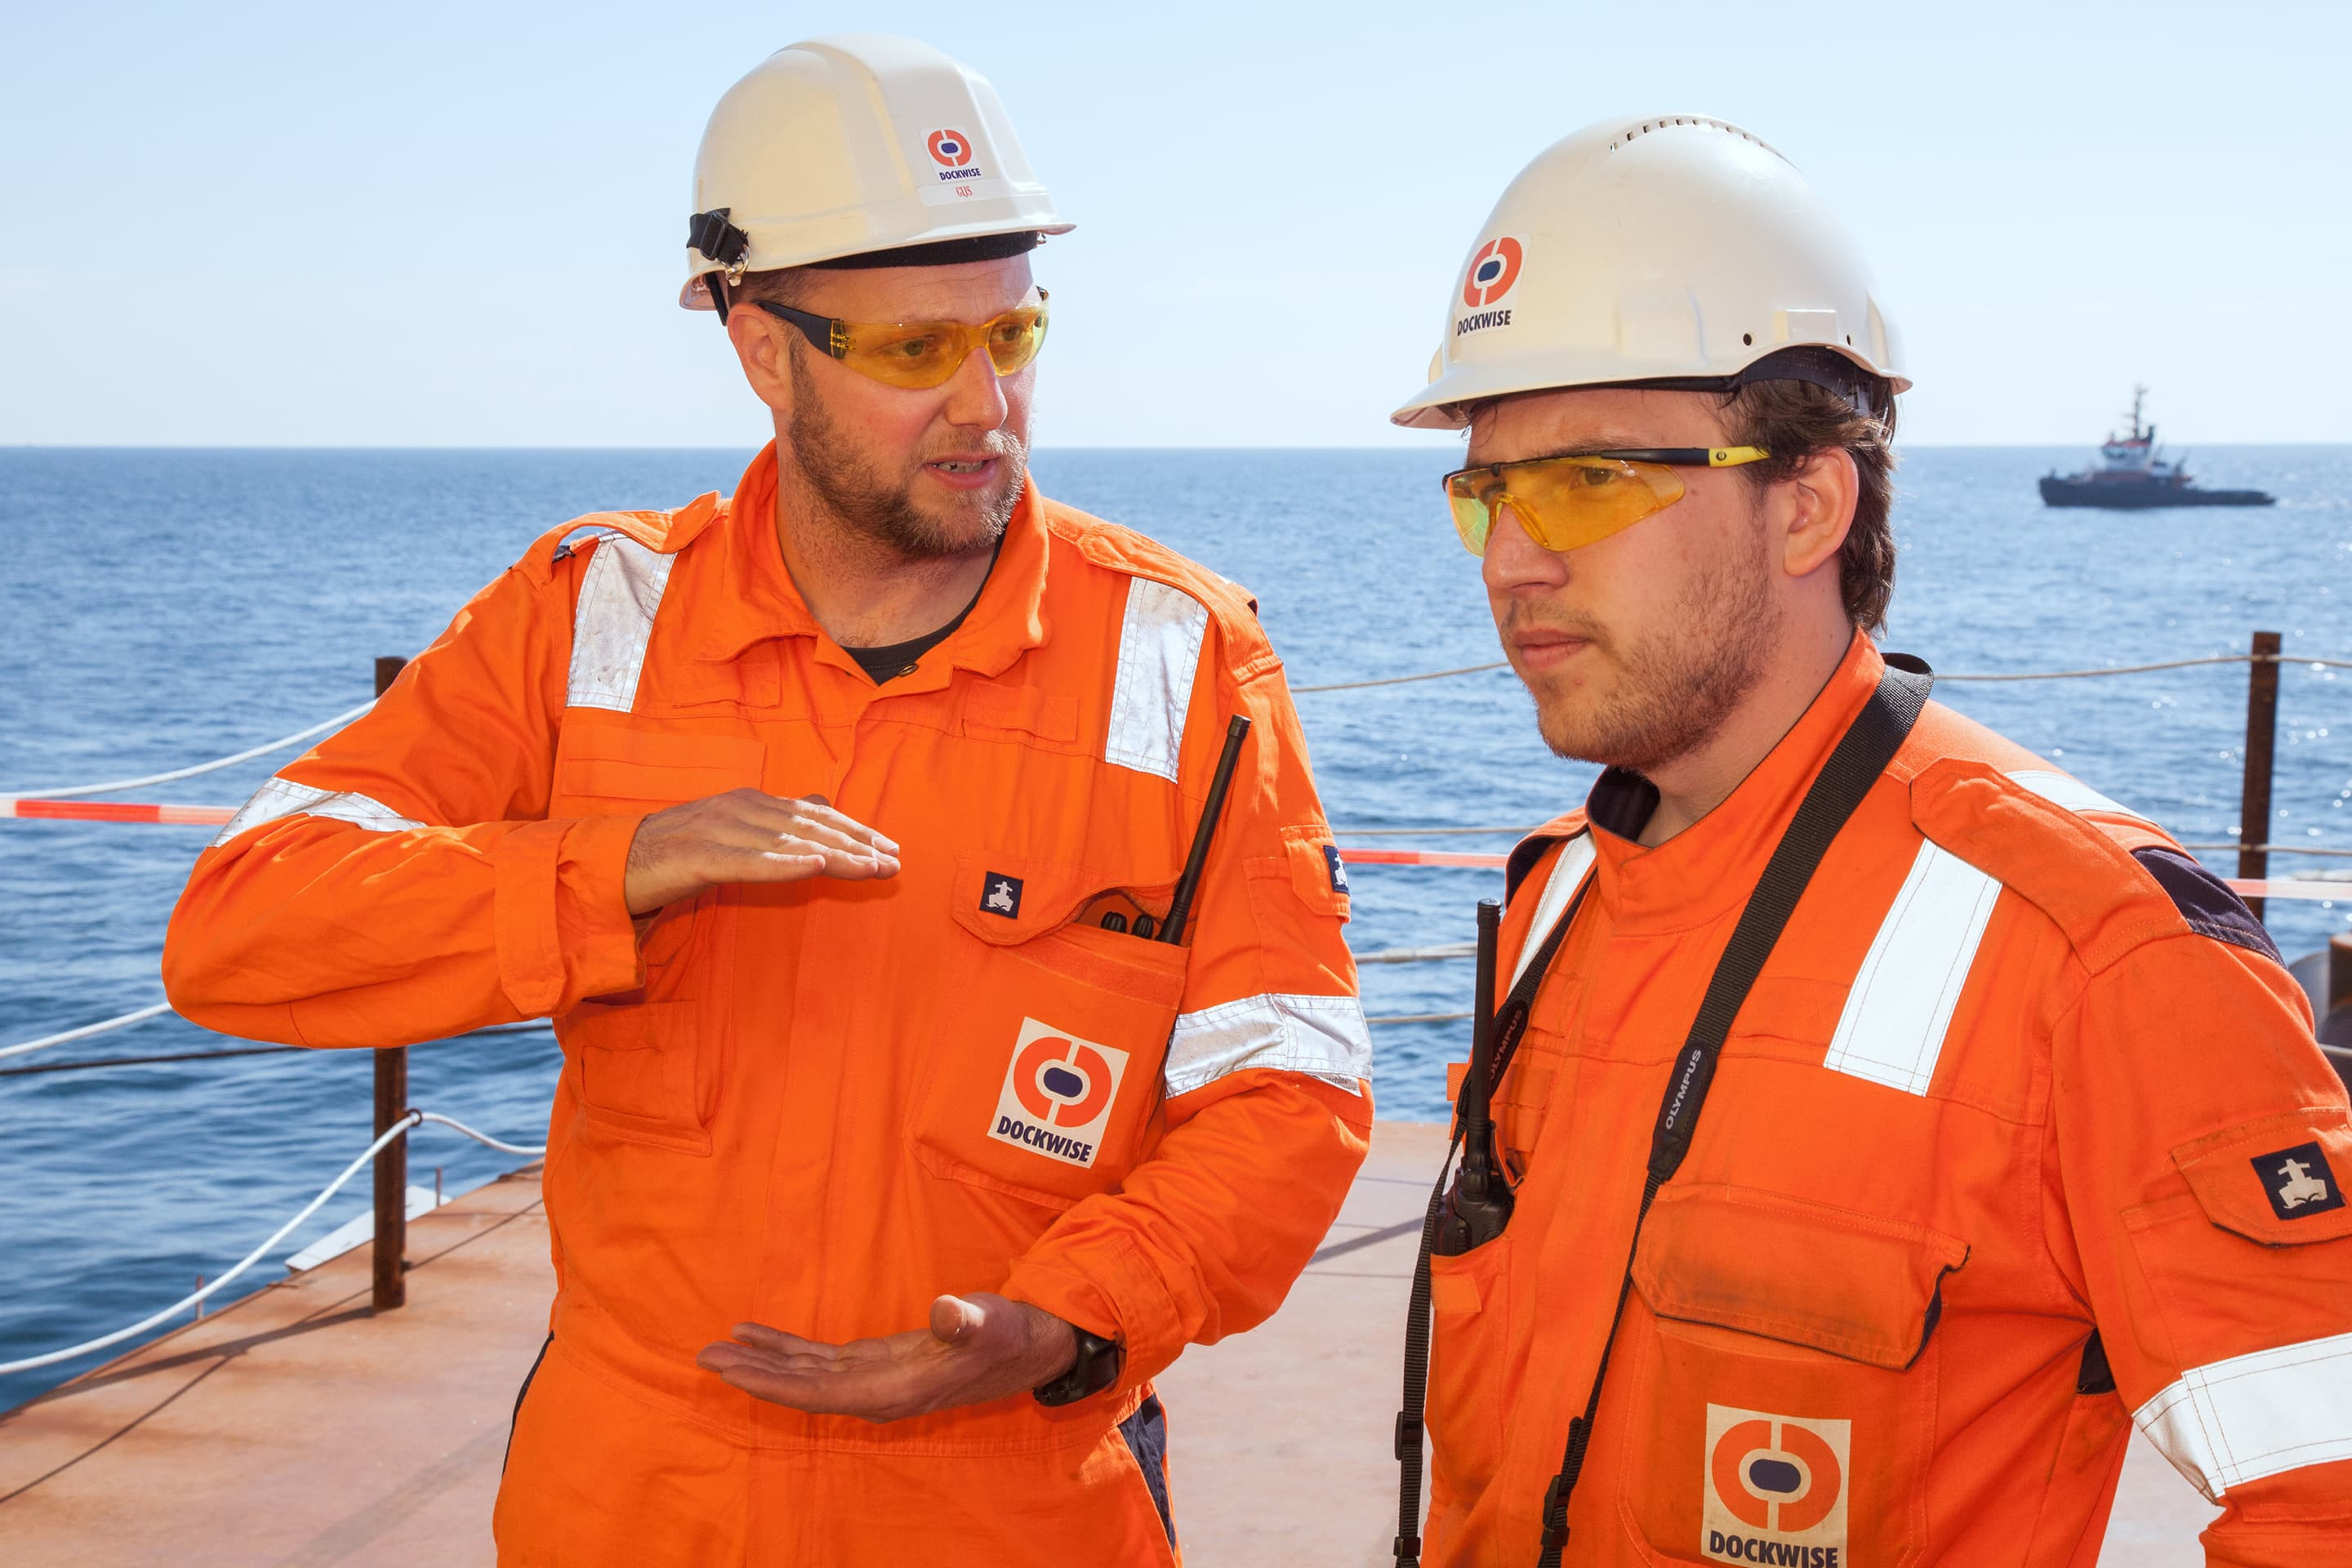 Dockwise colleagues at work